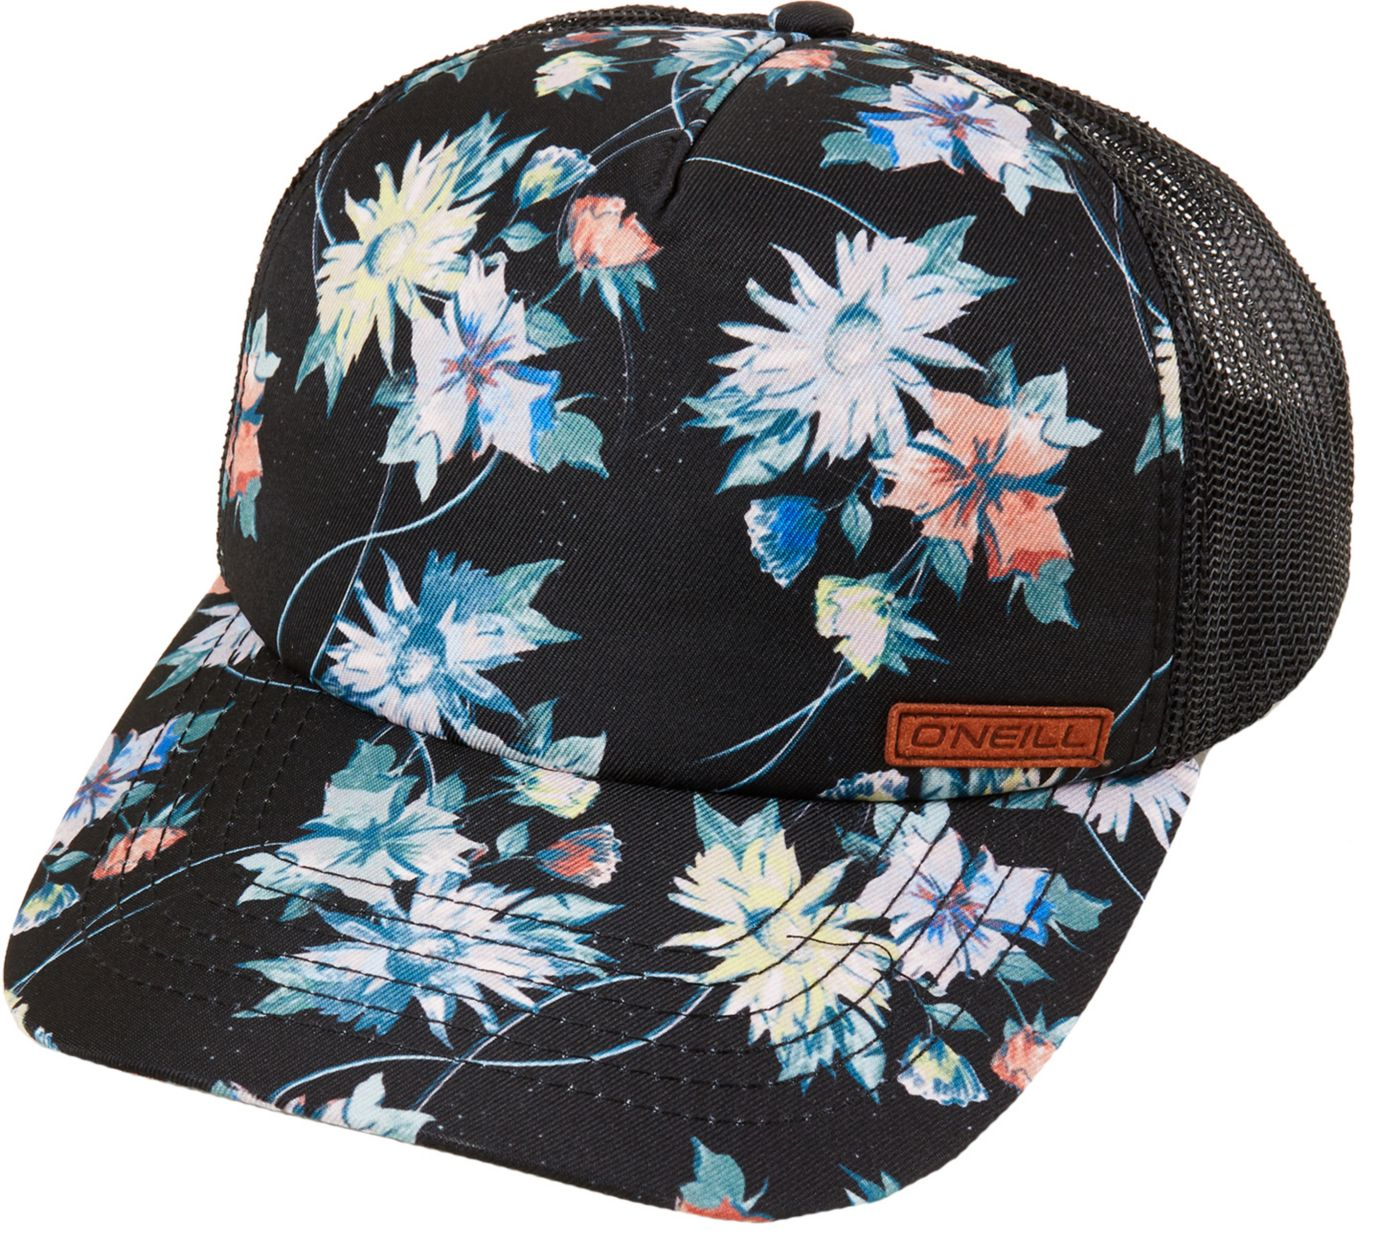 O'Neill Women's Saturdays Trucker Hat